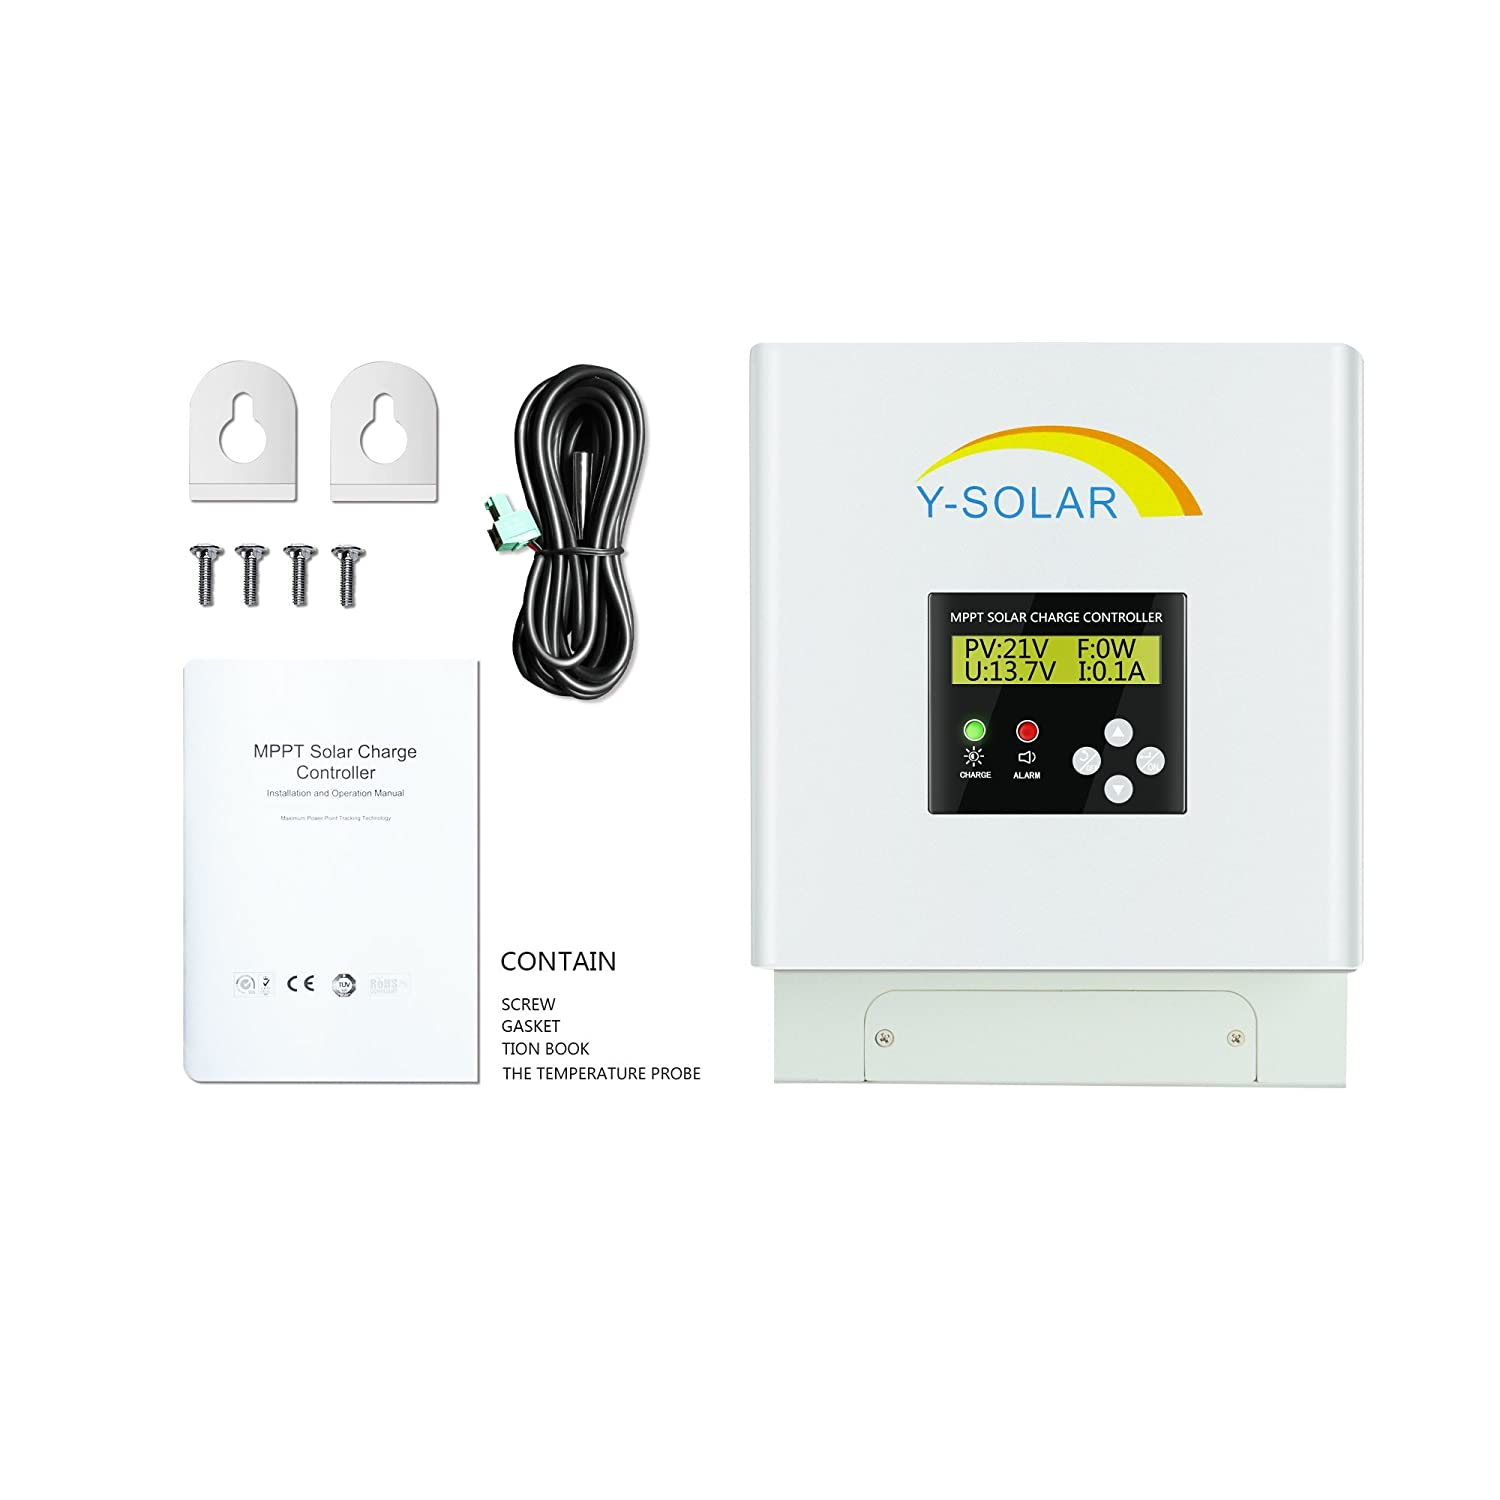 Y Solar Mppt Charge Controller 60a 60amp Wiring Schematic Also Circuit 48v 36v 24v 12v Auto Max 150vdc Input With Backlight Lcd Display For Sealed